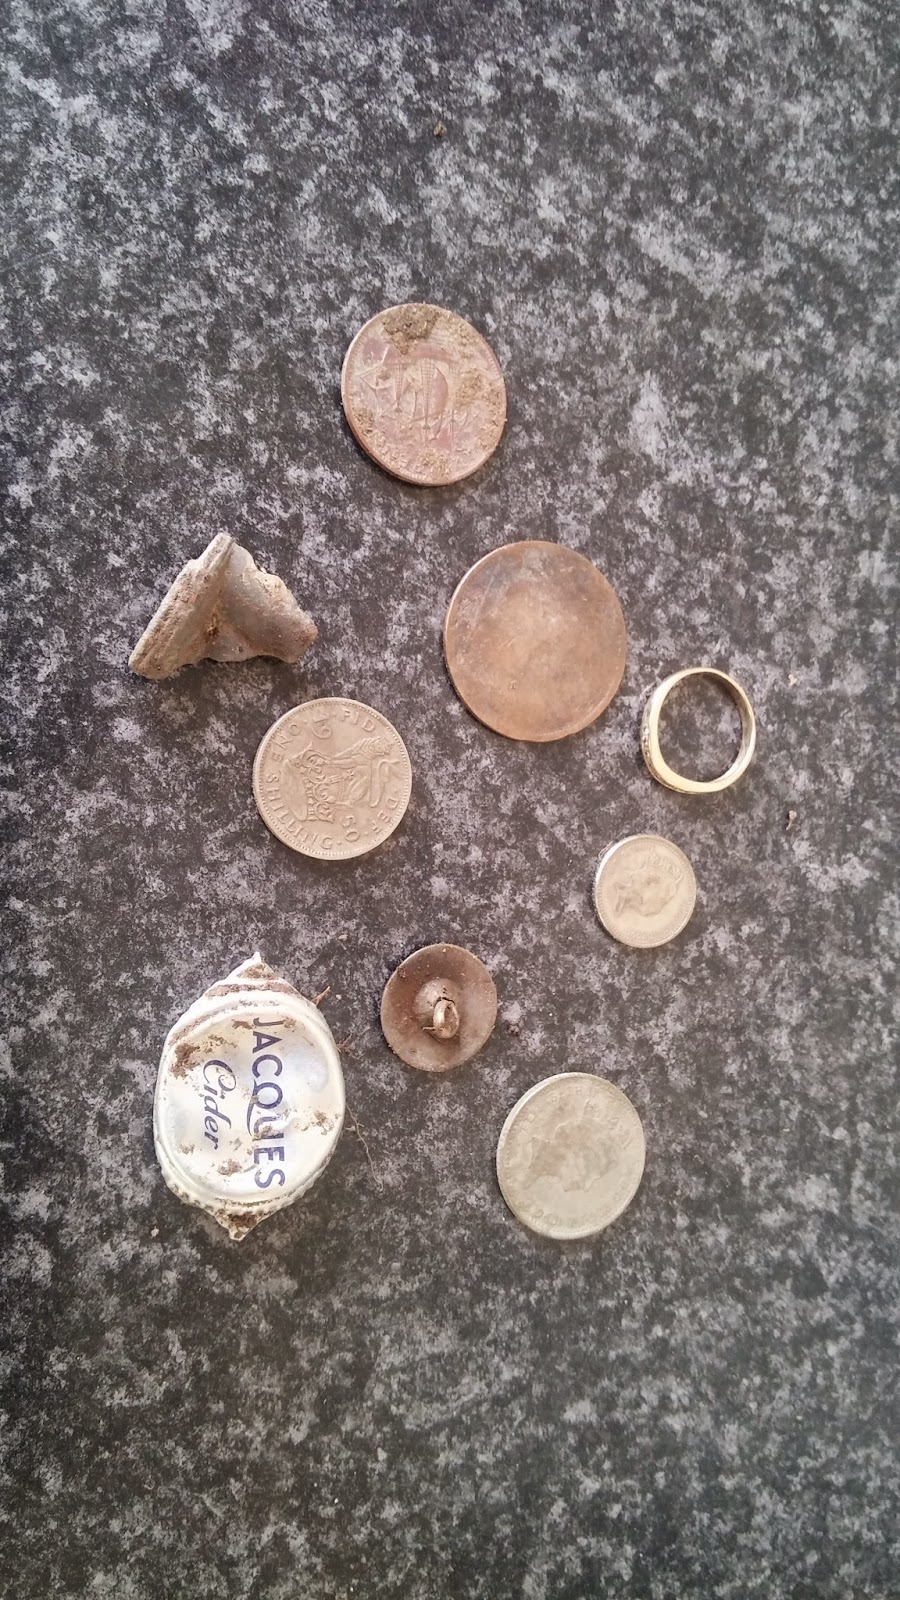 a picture of some of my metal detecting finds